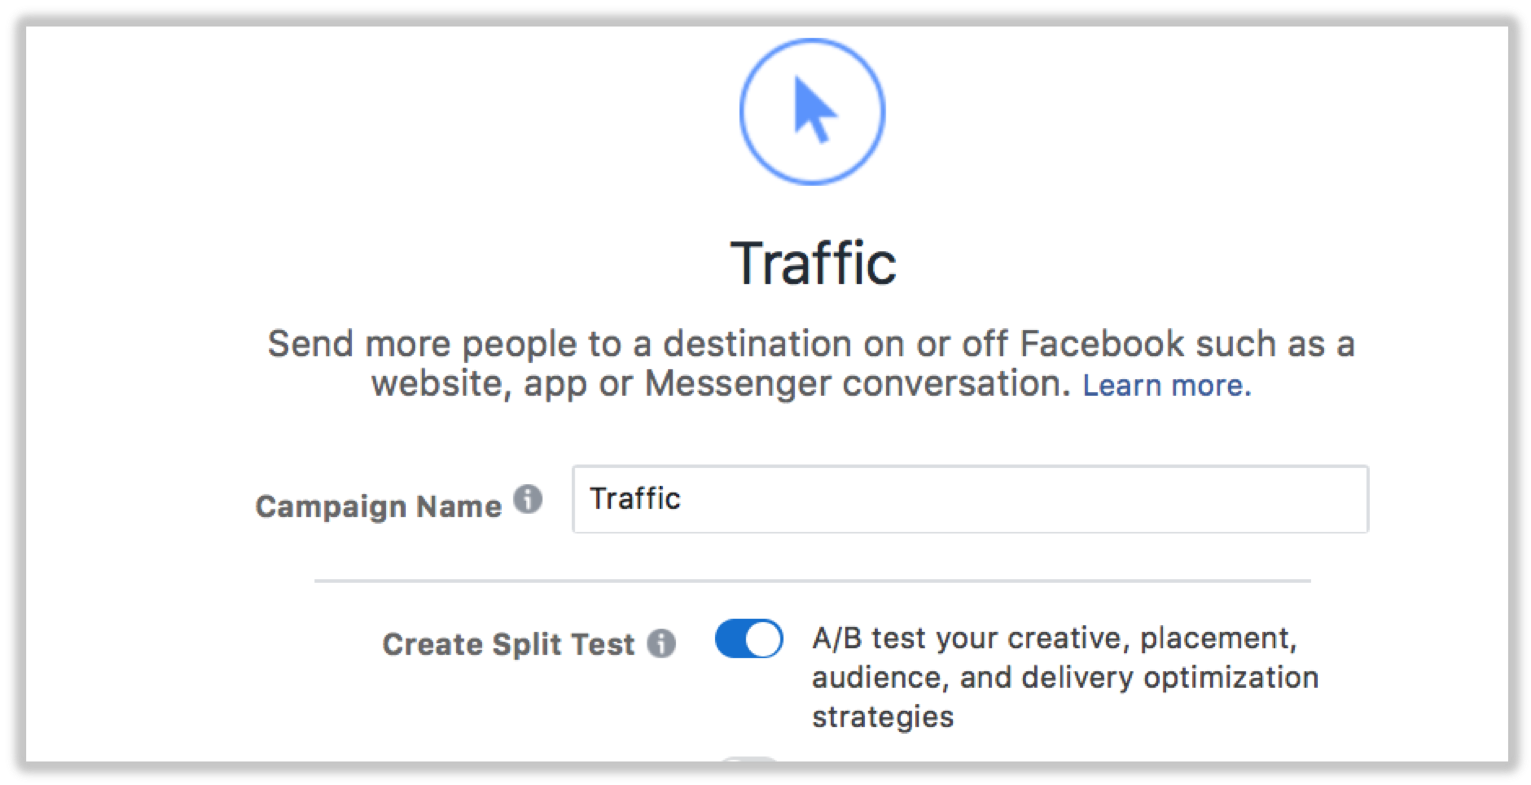 Creating a split test on Facebook will help you optimise your ad spend to the right audience.